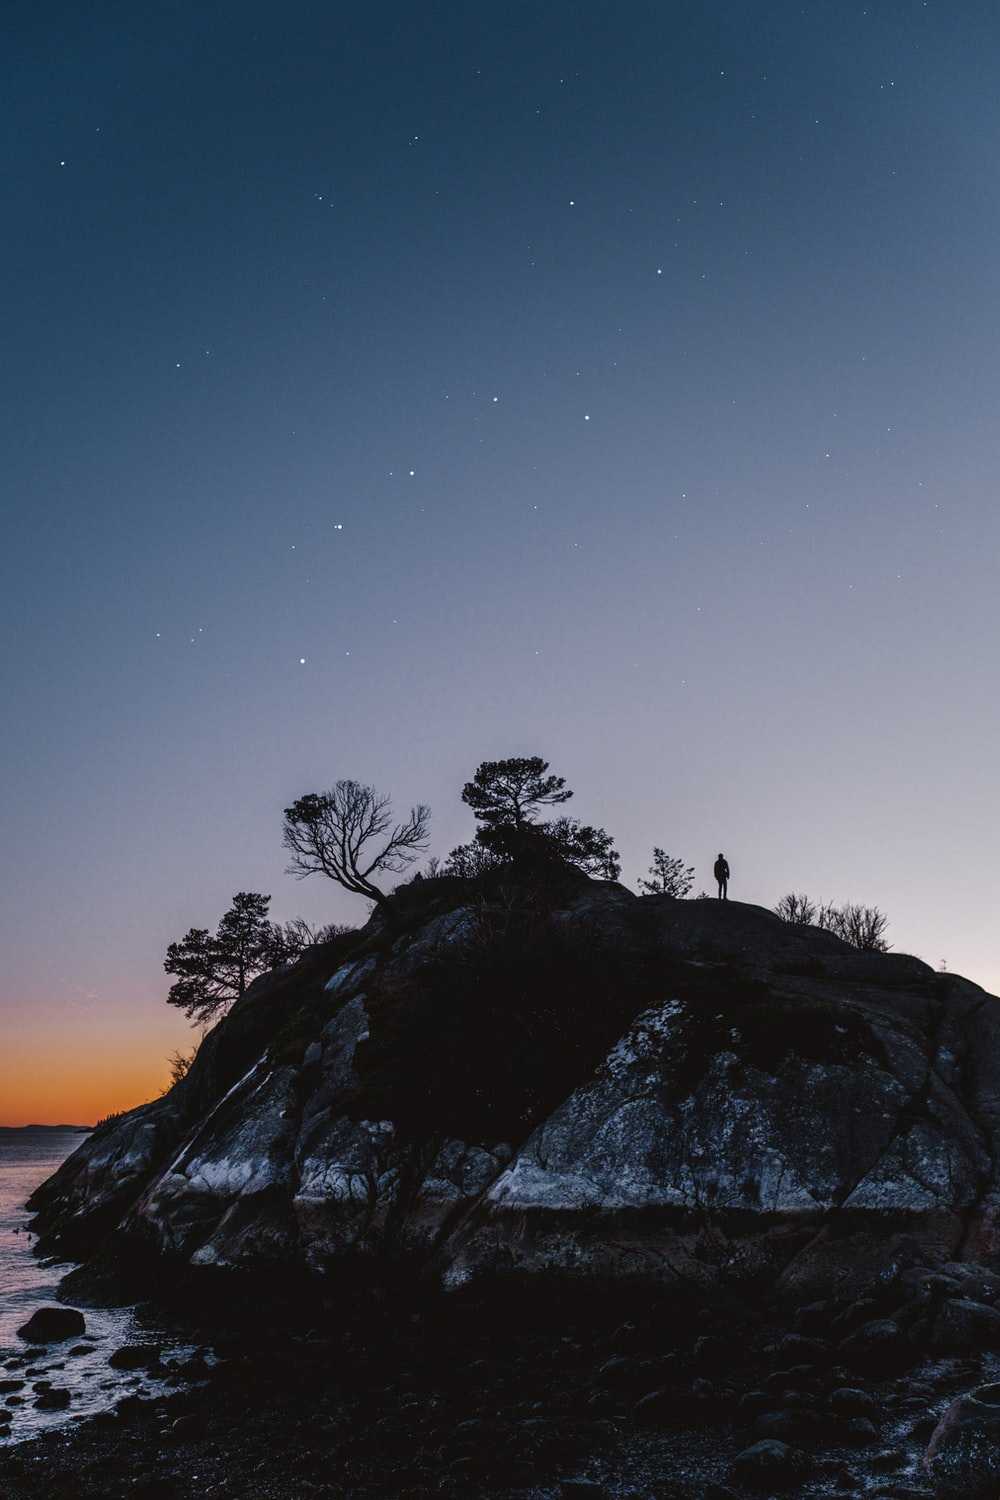 silhouette of 2 people standing on rock formation during night time